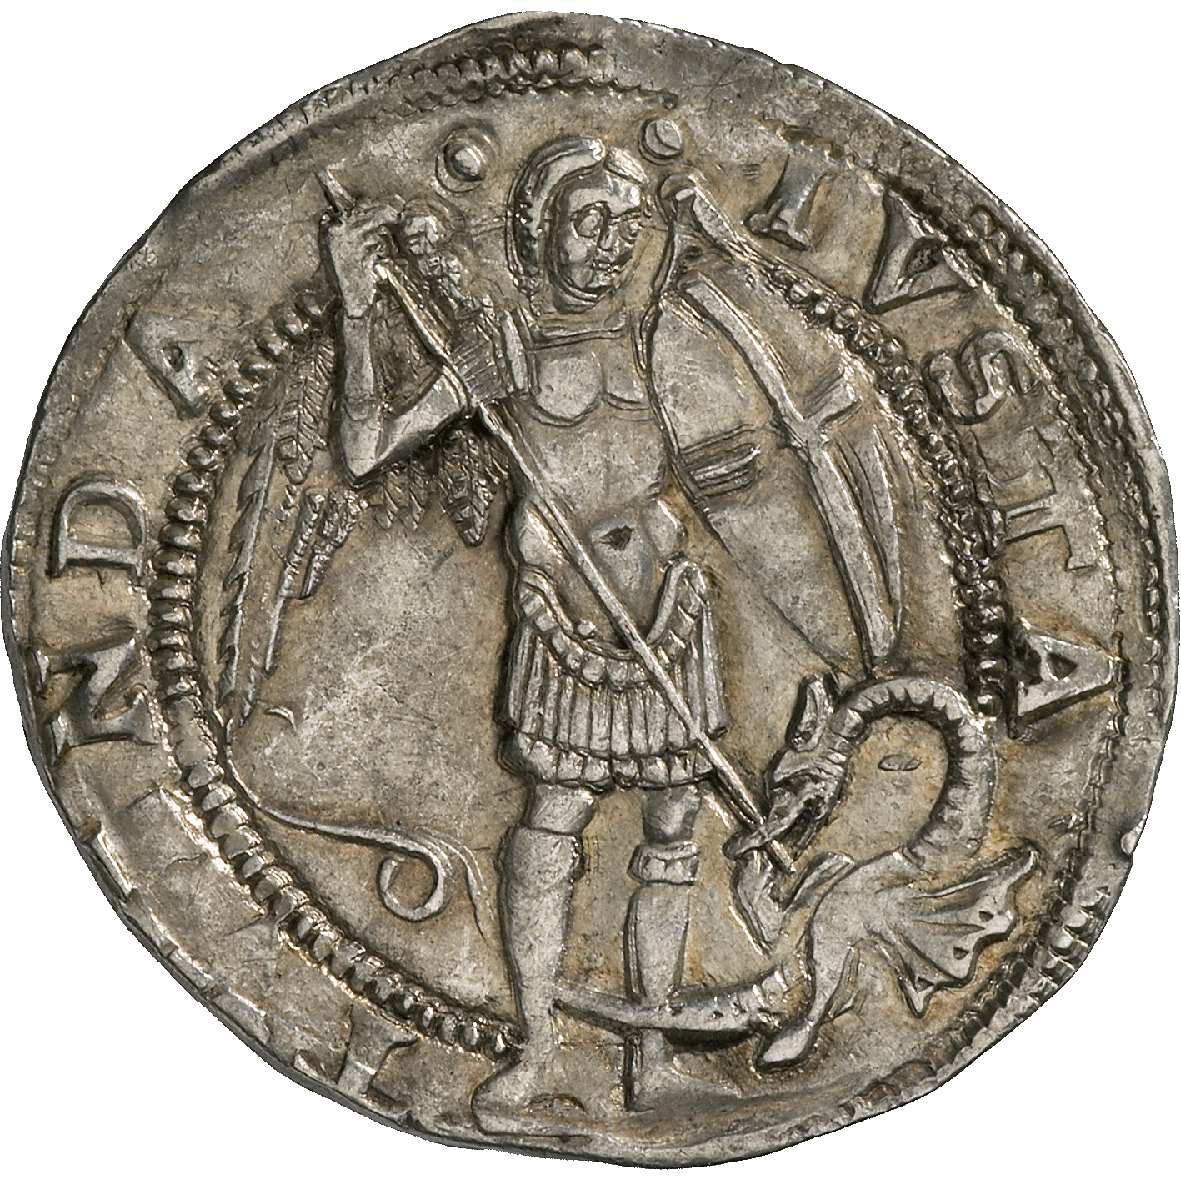 Kingdom of Napels, Ferdinand I of Aragon, Coronato  (reverse)